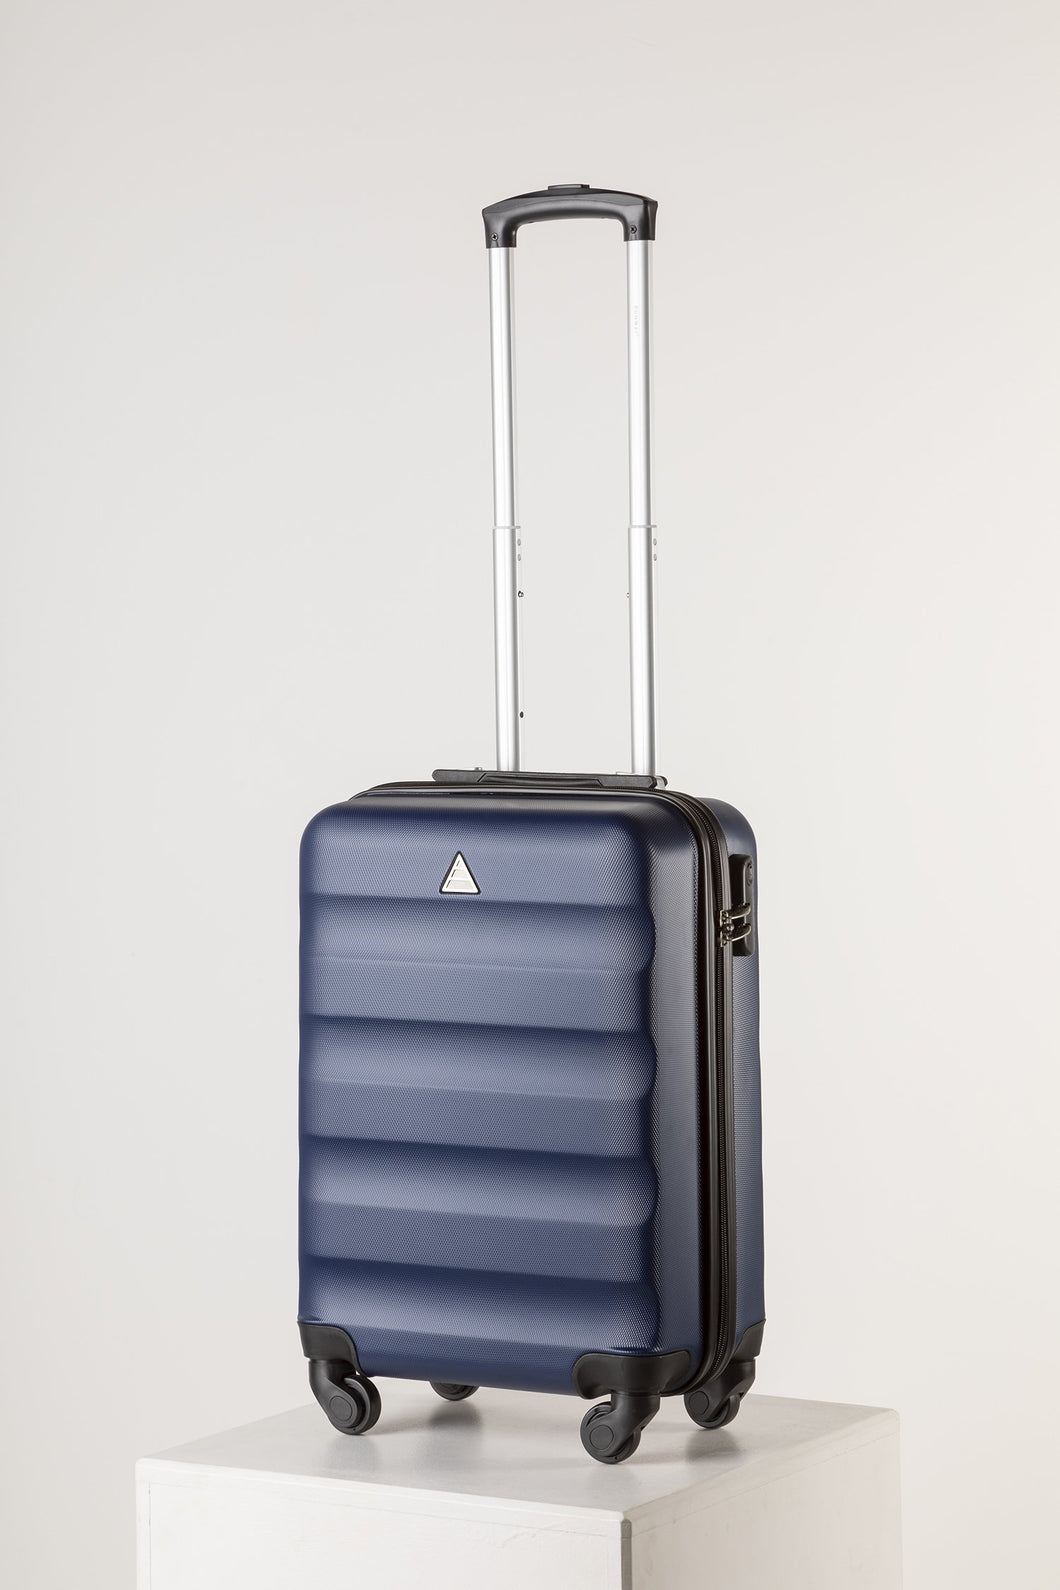 Hard Shell Carry On Luggage Navy Runway Suitcase Milan Range